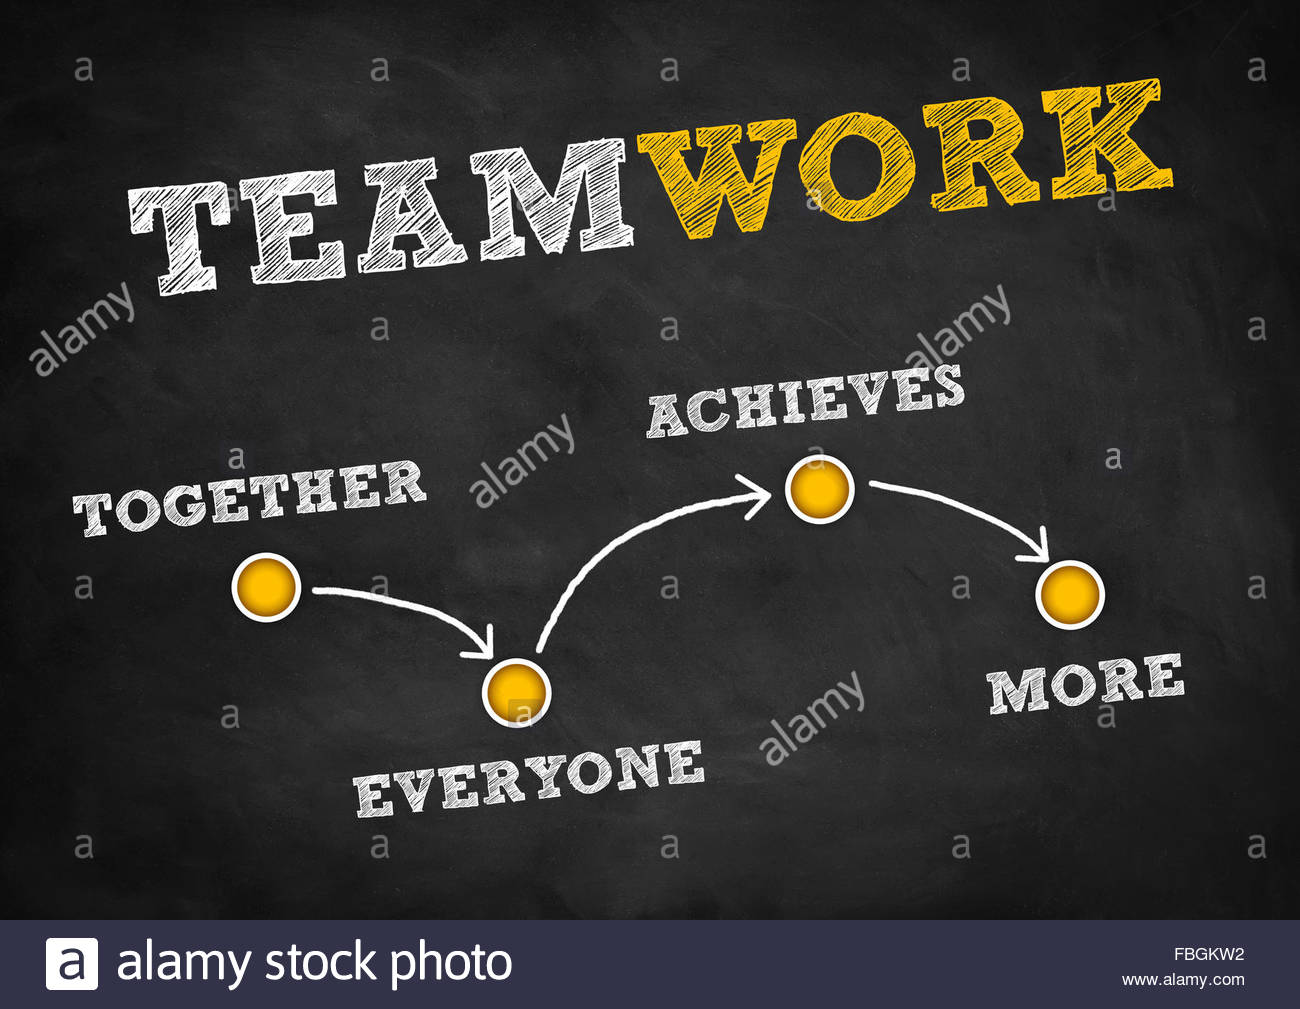 Teamwork - strategy concept - Stock Image